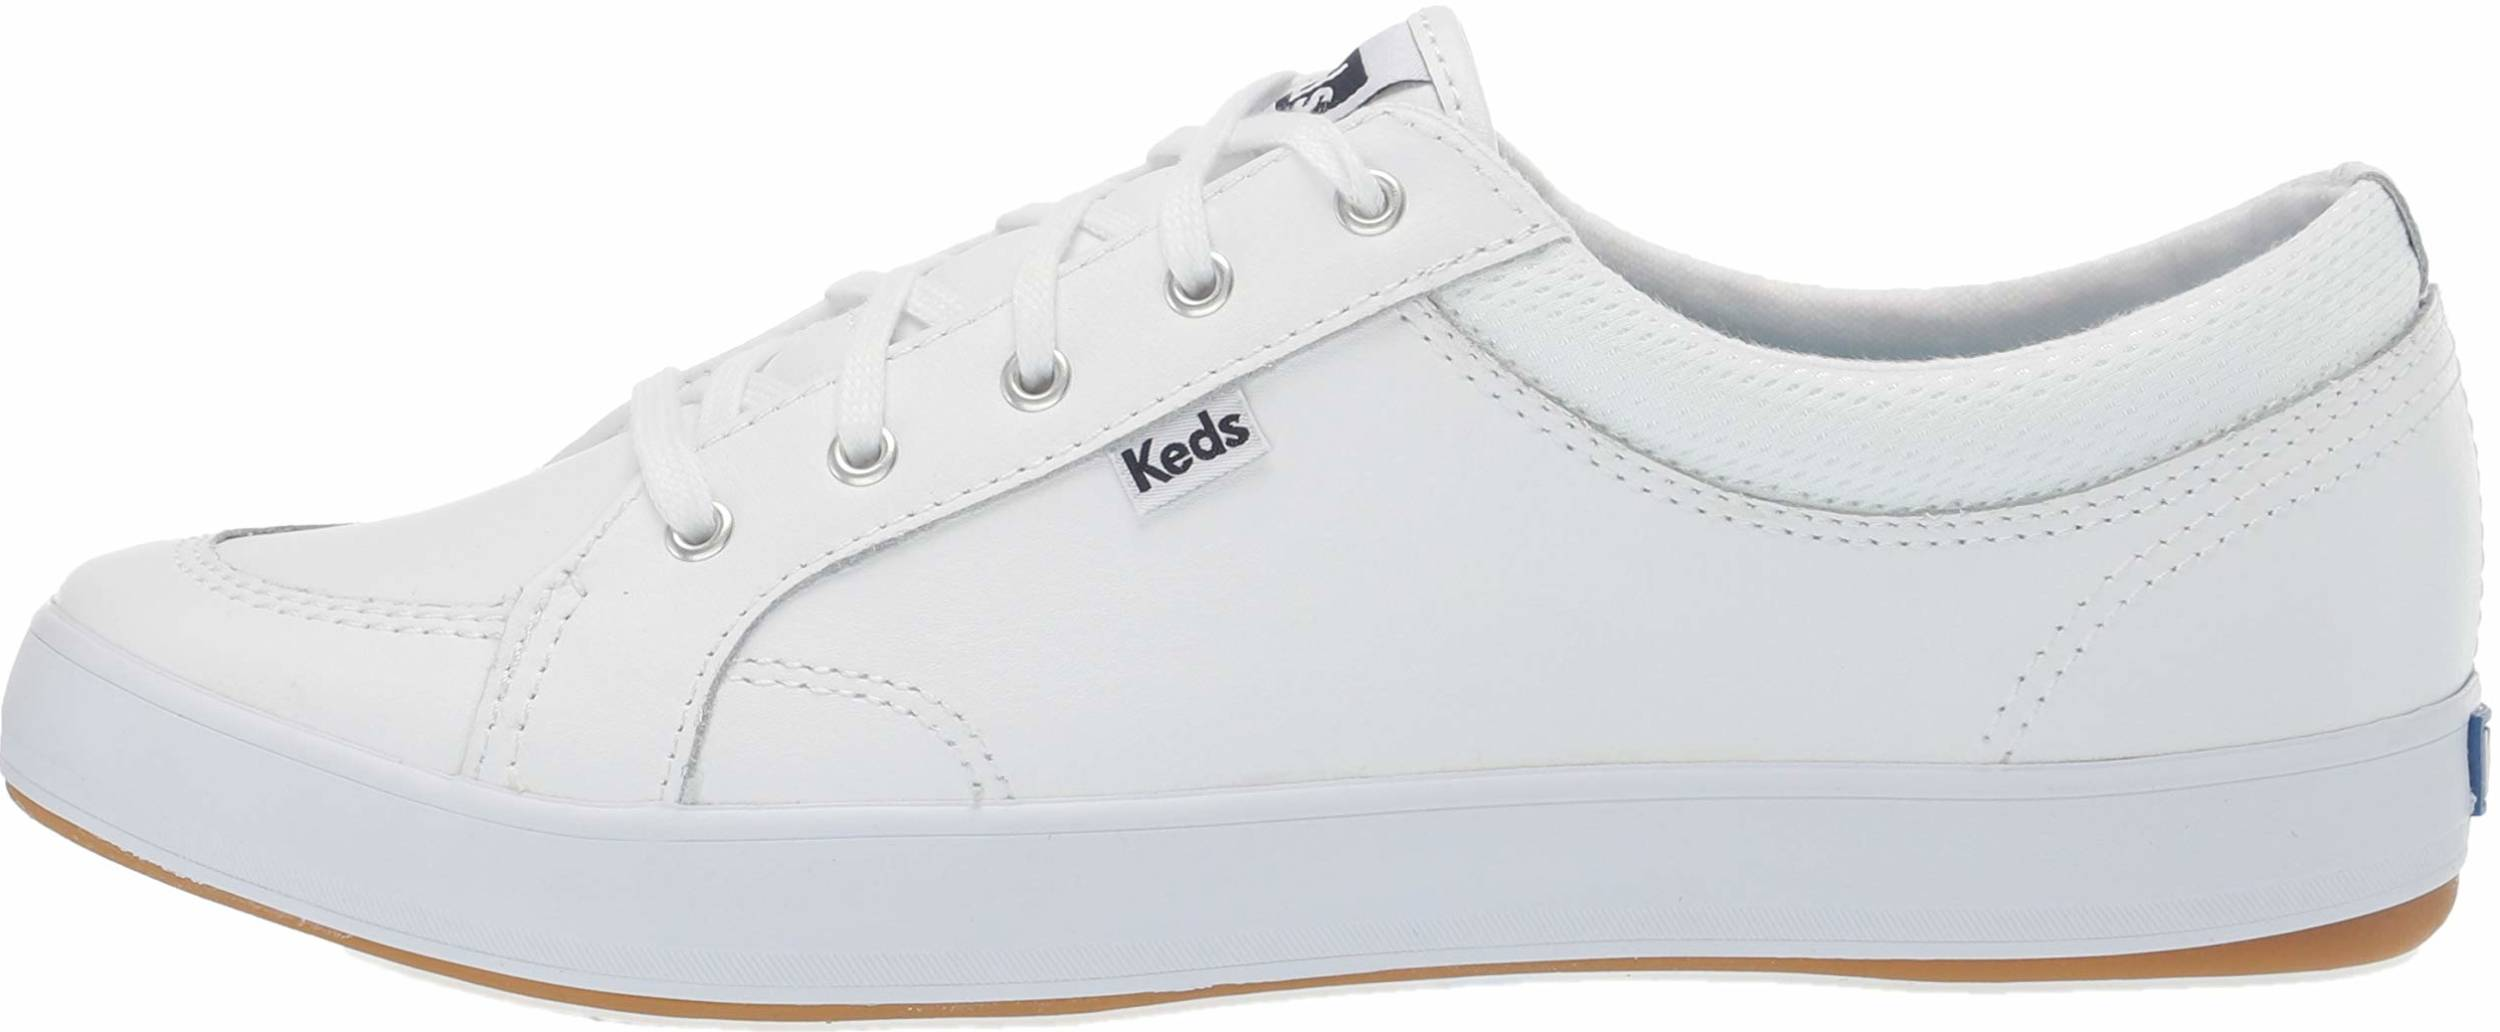 $55 + Review of Keds Center Leather